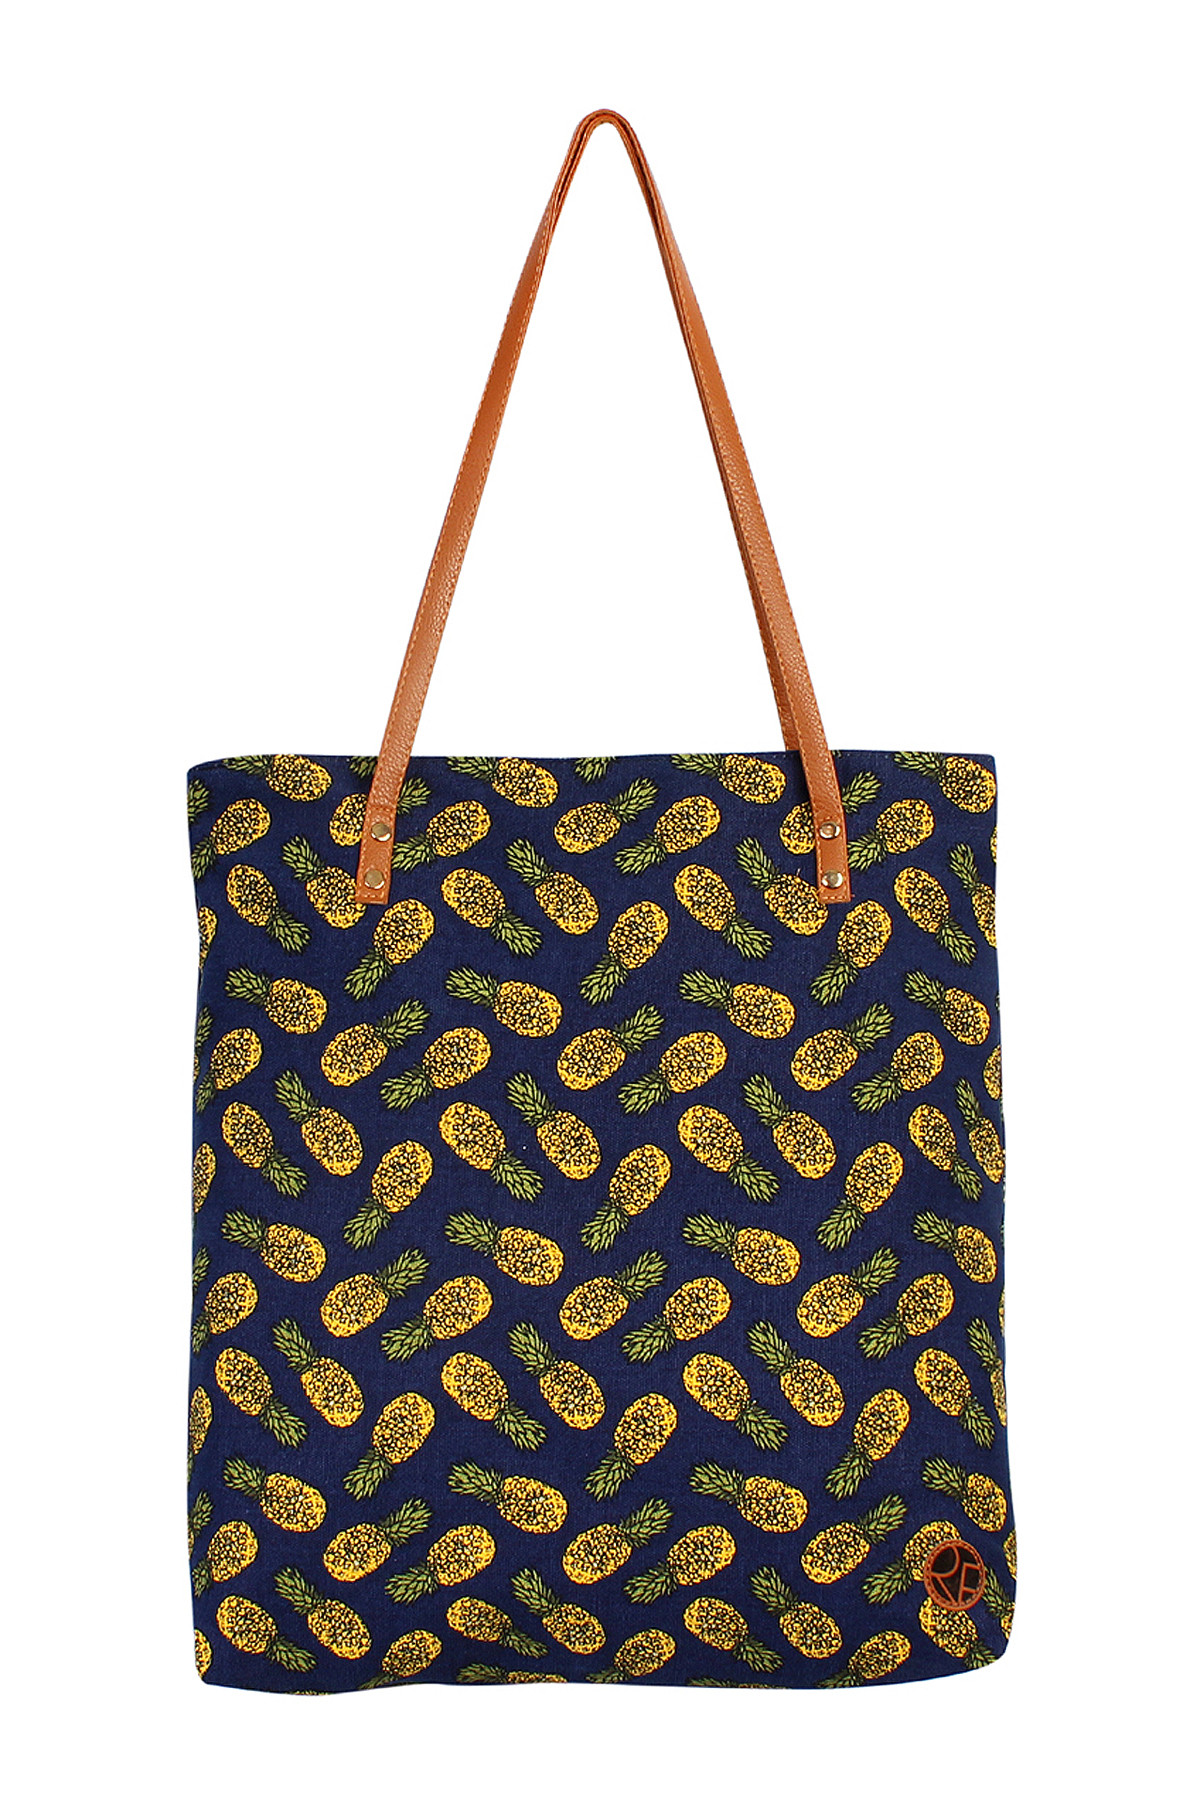 S4-5-5-AHDG1893NV NAVY PINEAPPLE PRINT TOTE BAG/6PCS